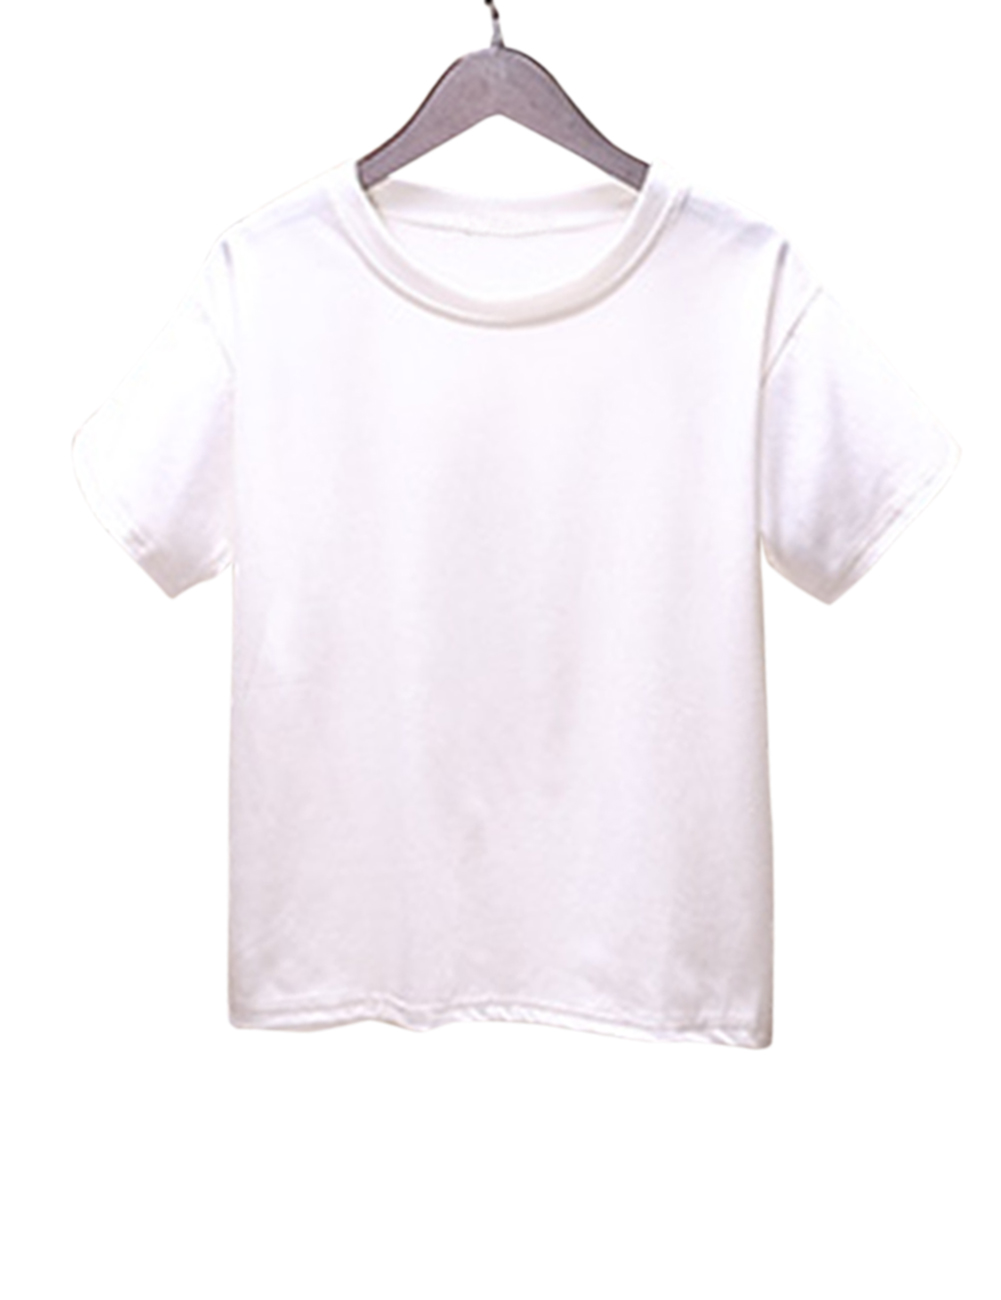 Women Stylish Short-Sleeve Solid Color T-Shirt Casual Round Neck Tops